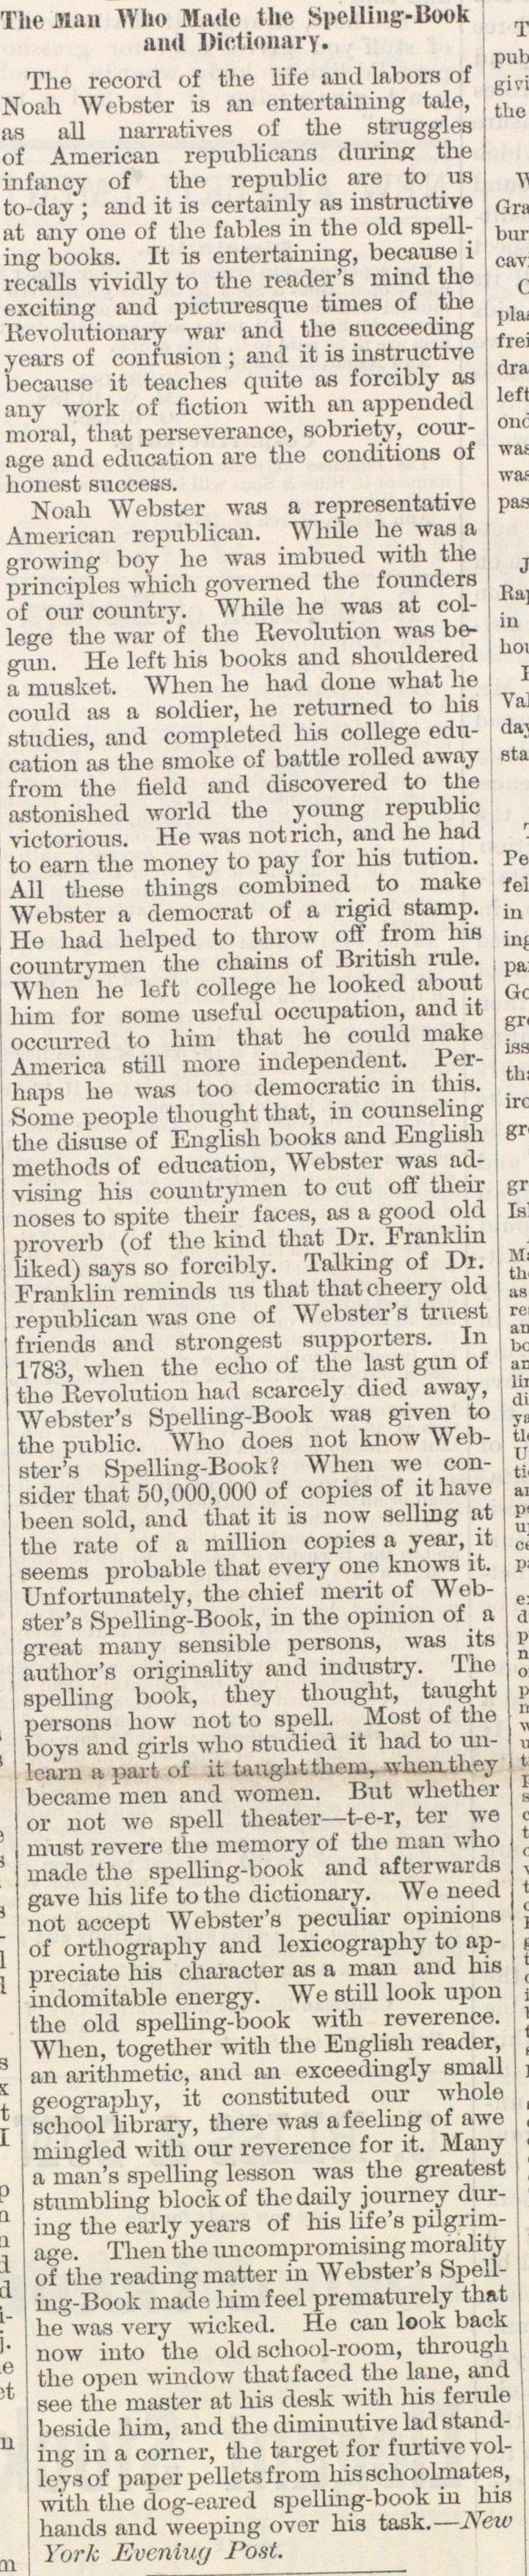 The Man Who Made The Spelling-book And Dictionary image